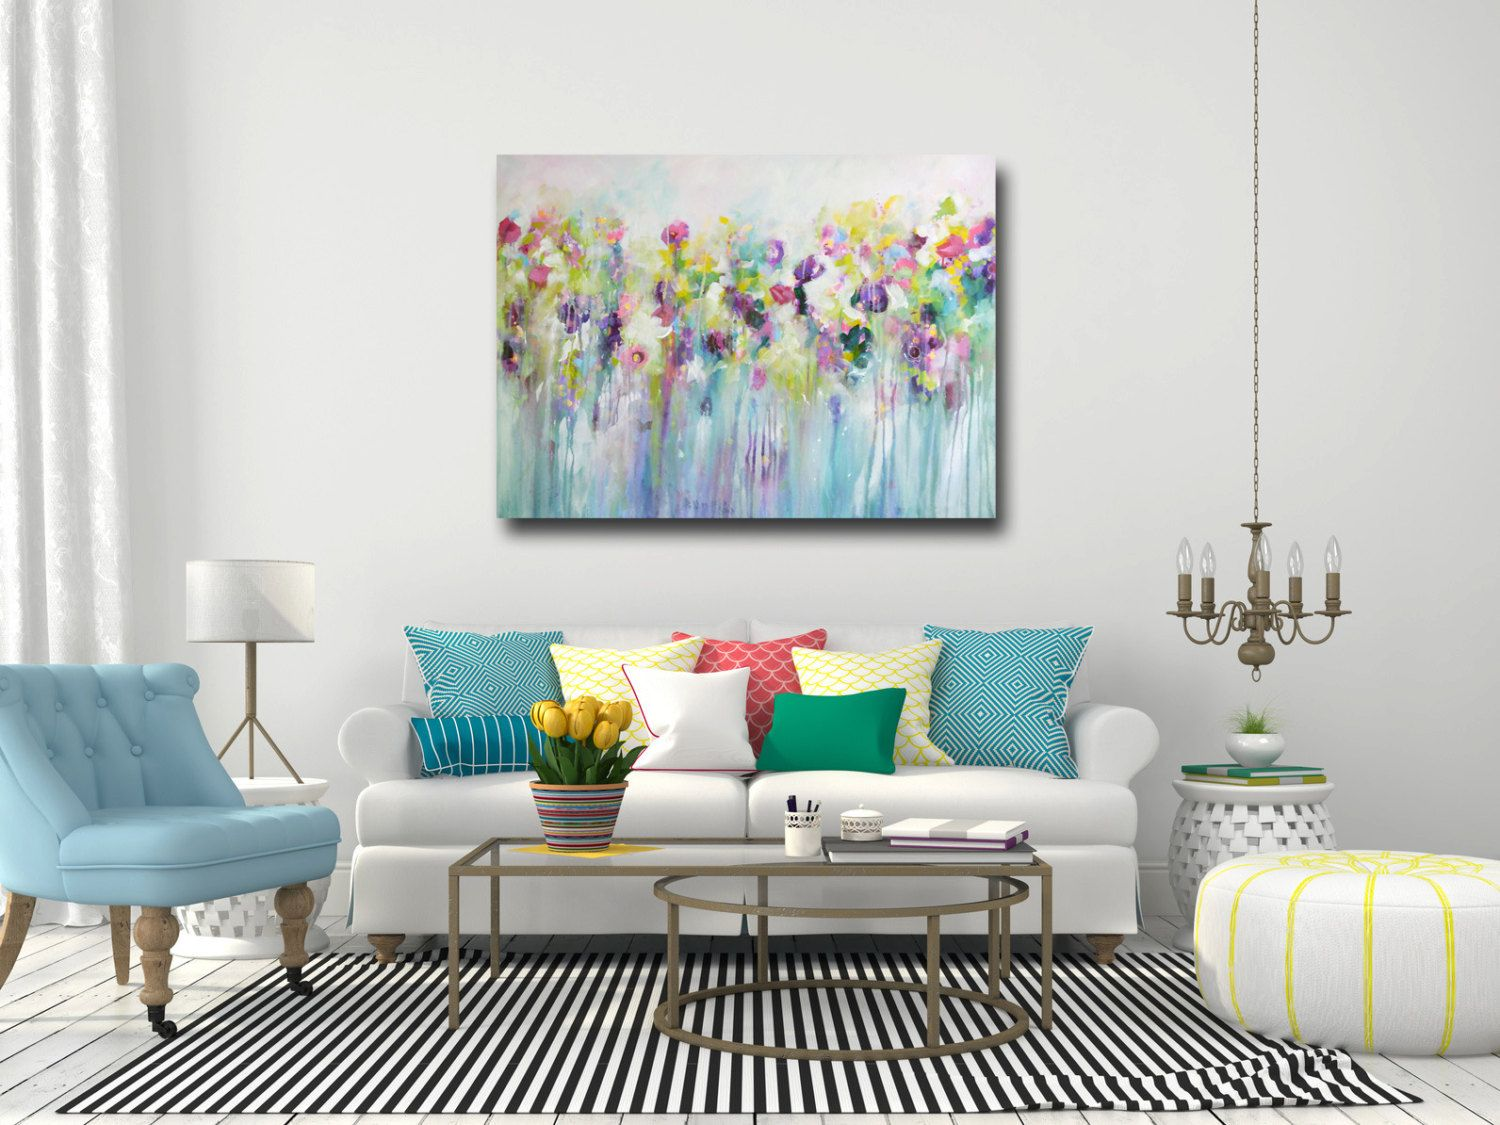 Wall Art Paintings For Living Room Large Wall Art Canvas Art Abstract Floral Canvas Print Giclee